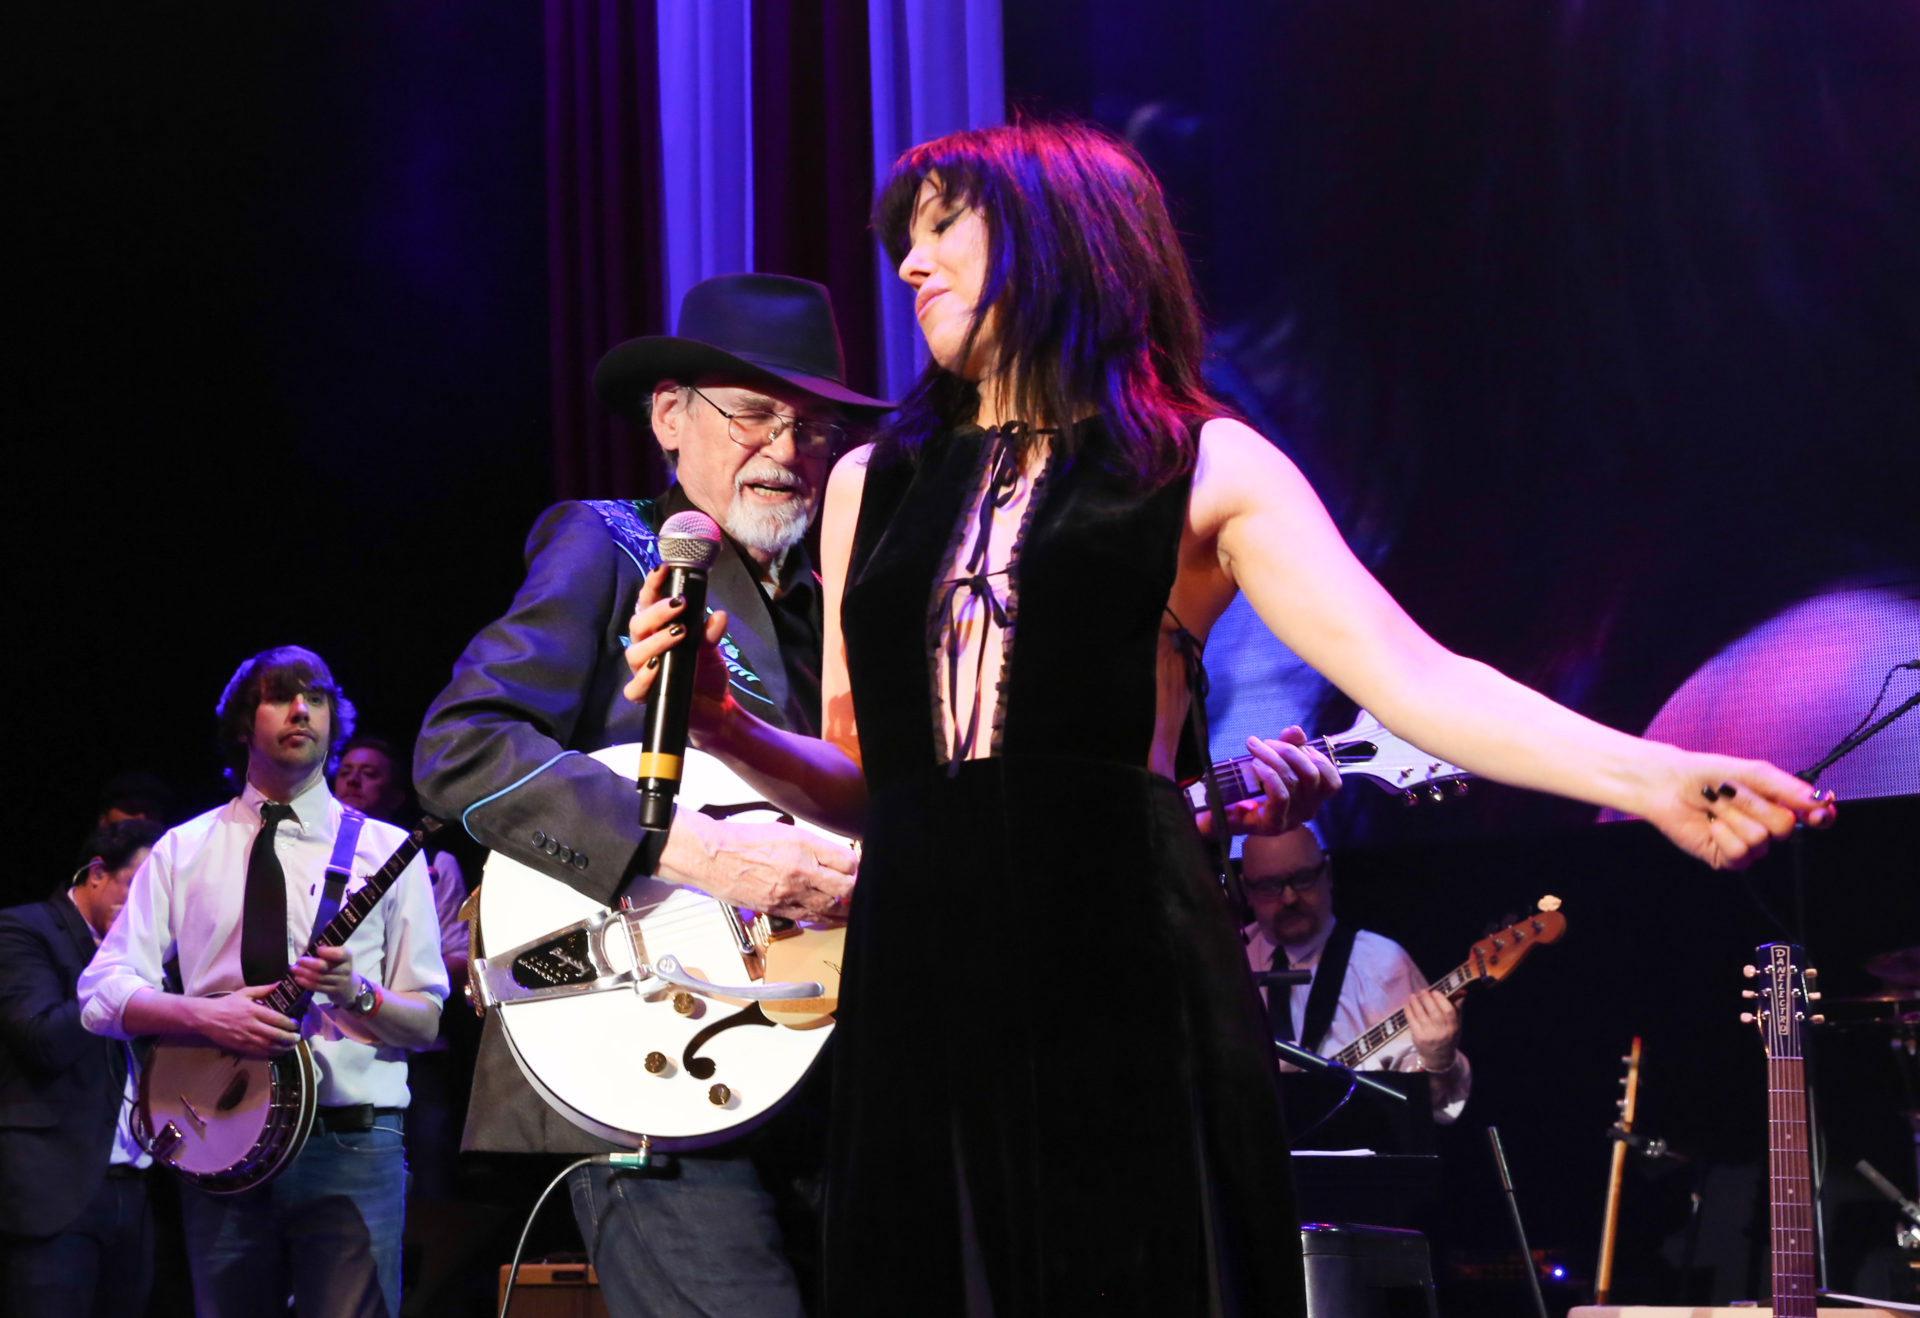 On stage with Imelda May and Duane Eddy